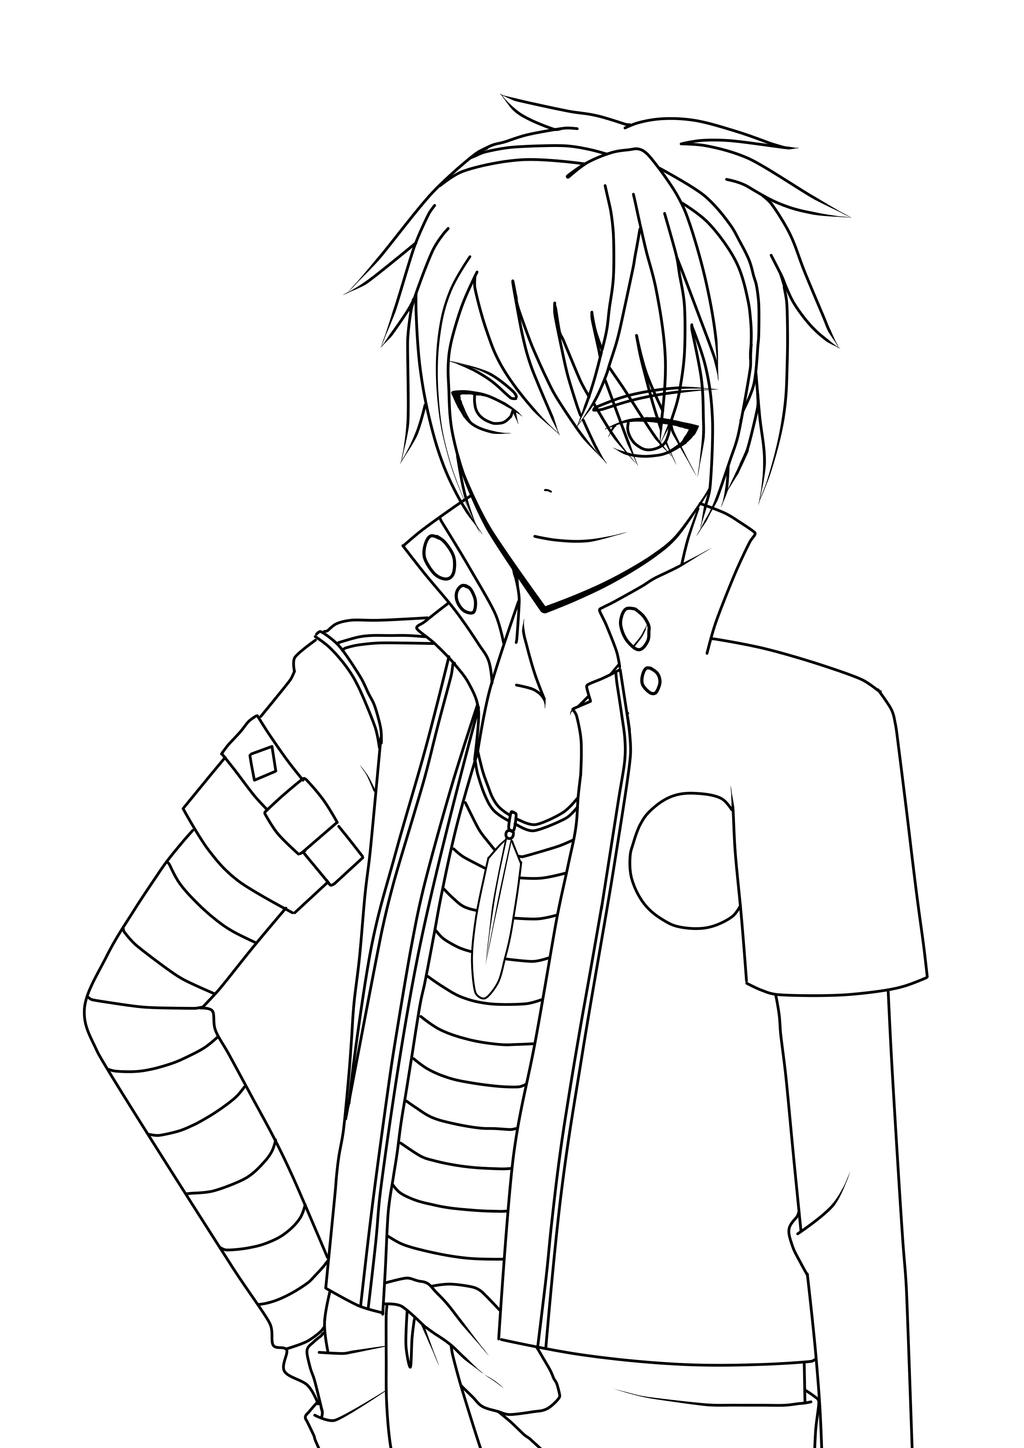 Line Art Anime : Toma amnesia anime line art by allouchsukeshi on deviantart